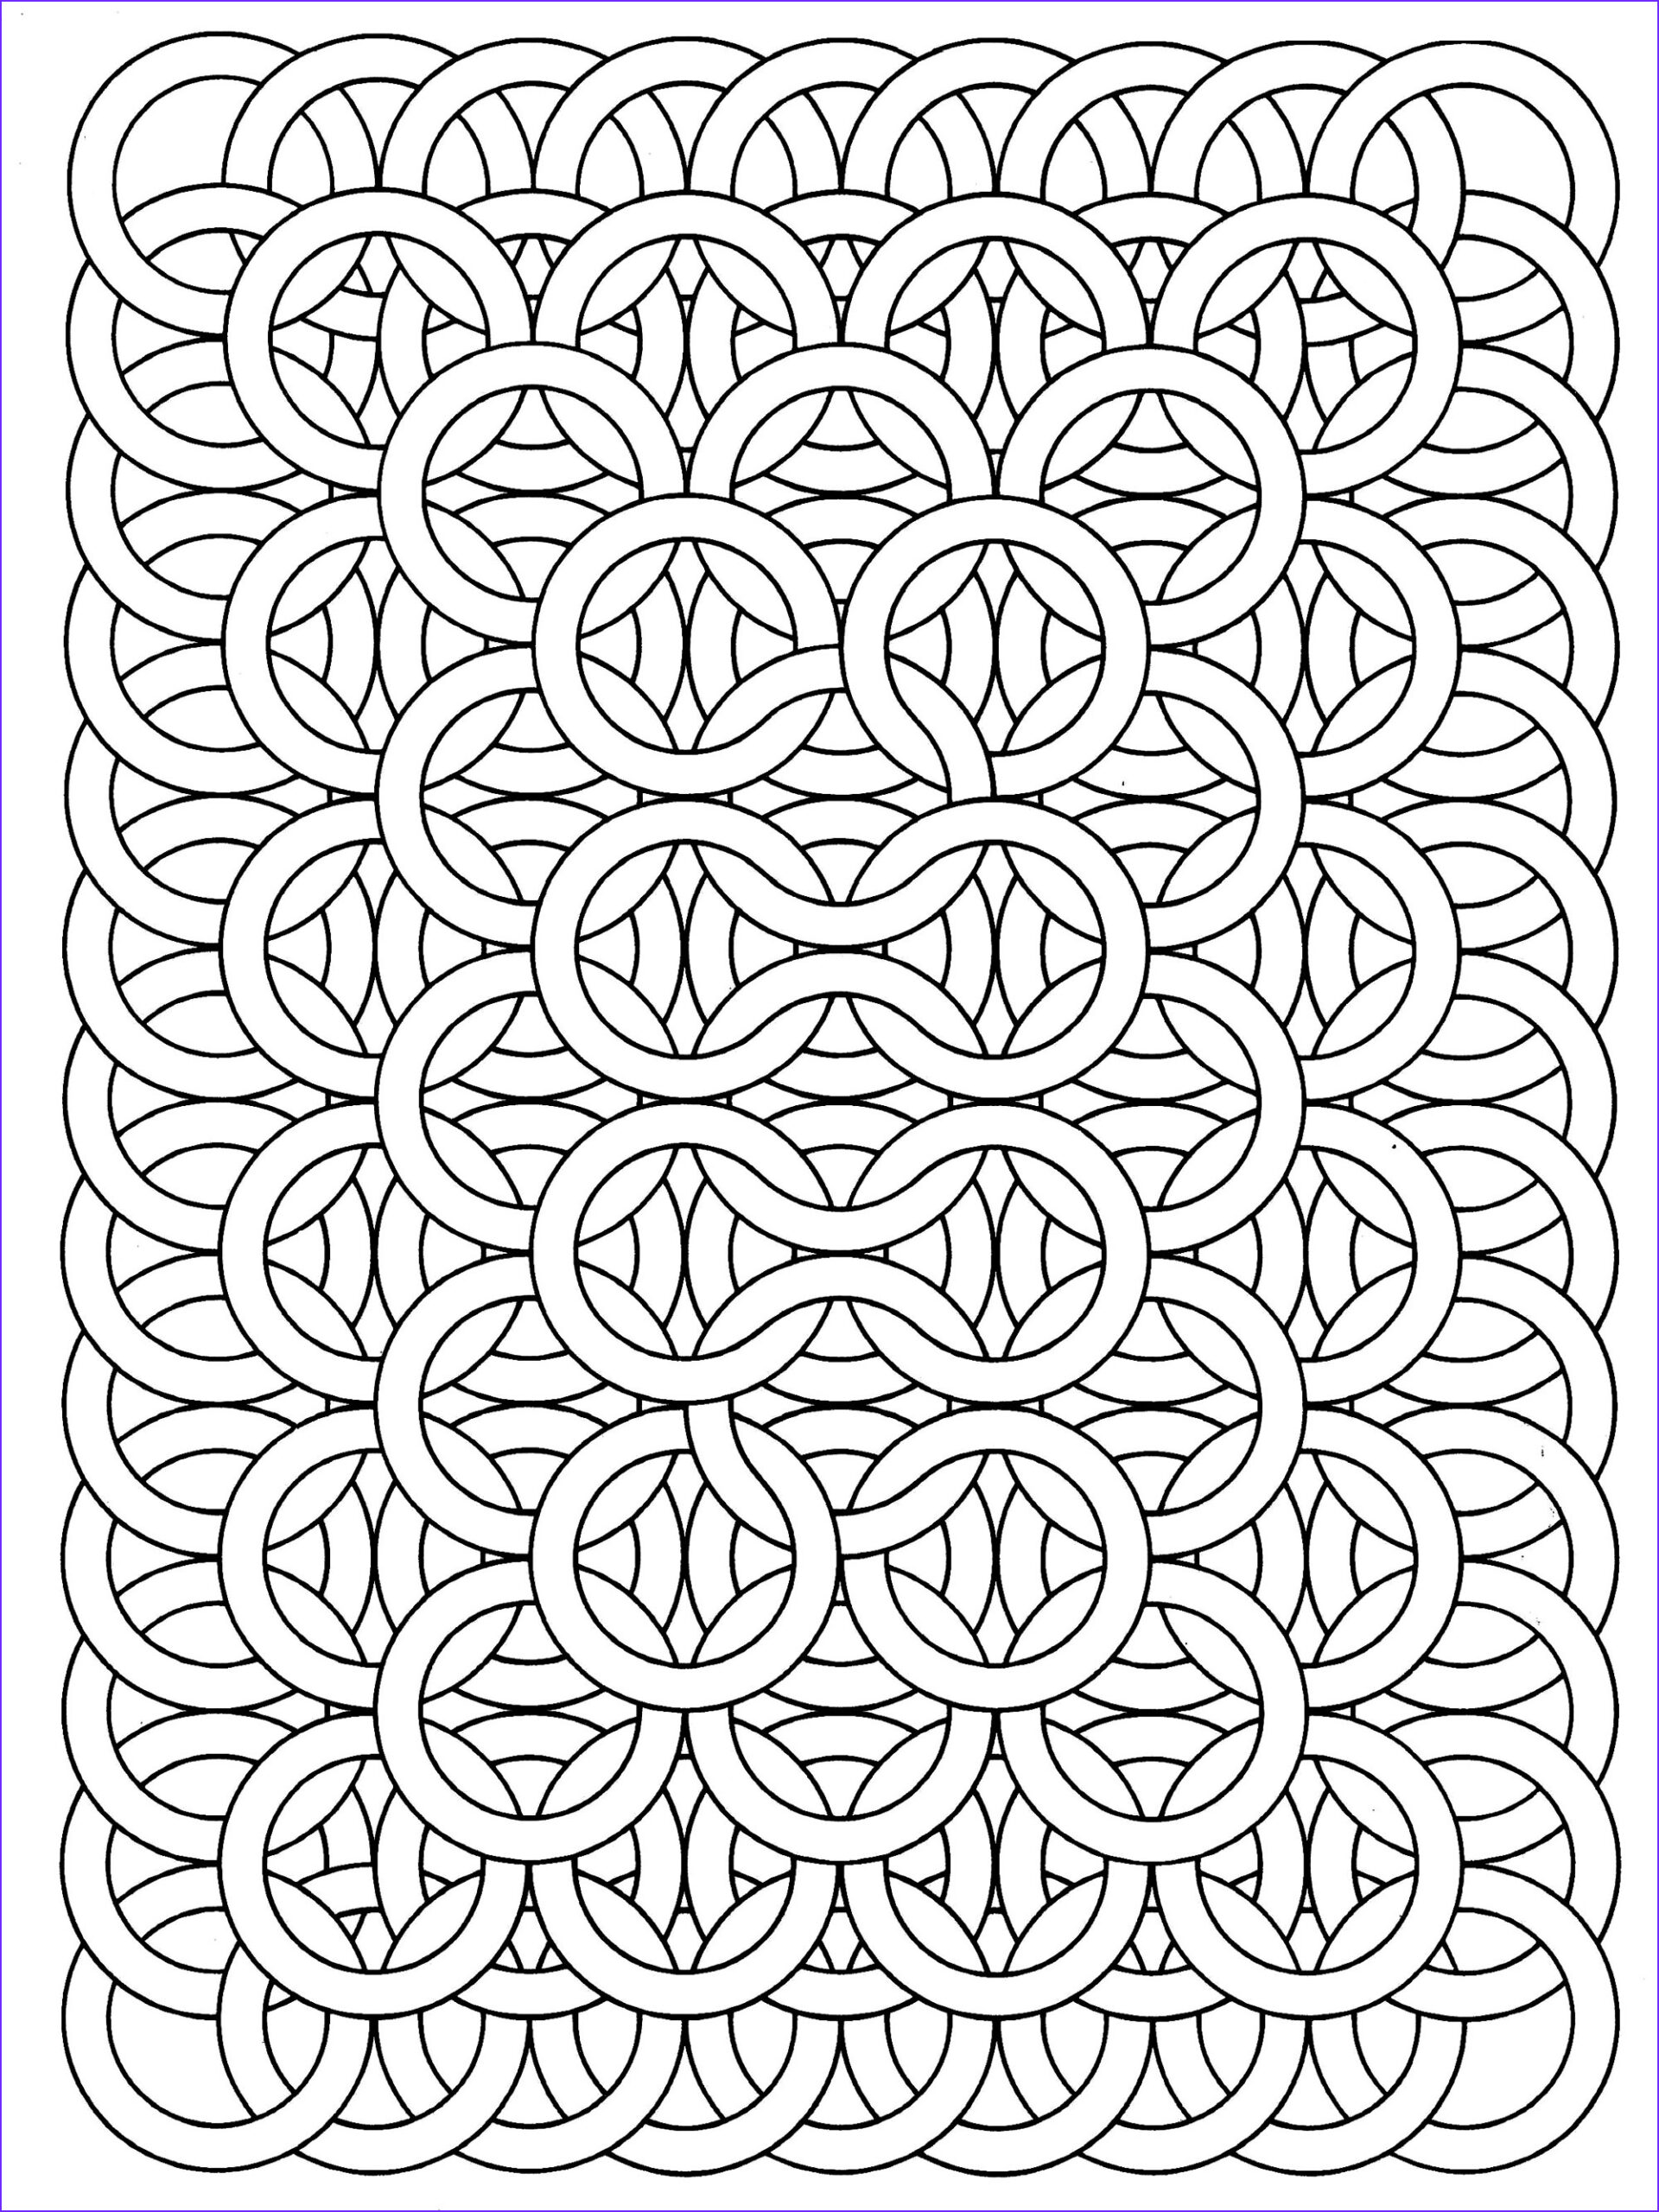 Free Printable Adult Coloring Sheets Best Of Image Free Adult Coloring Pages Happiness is Homemade